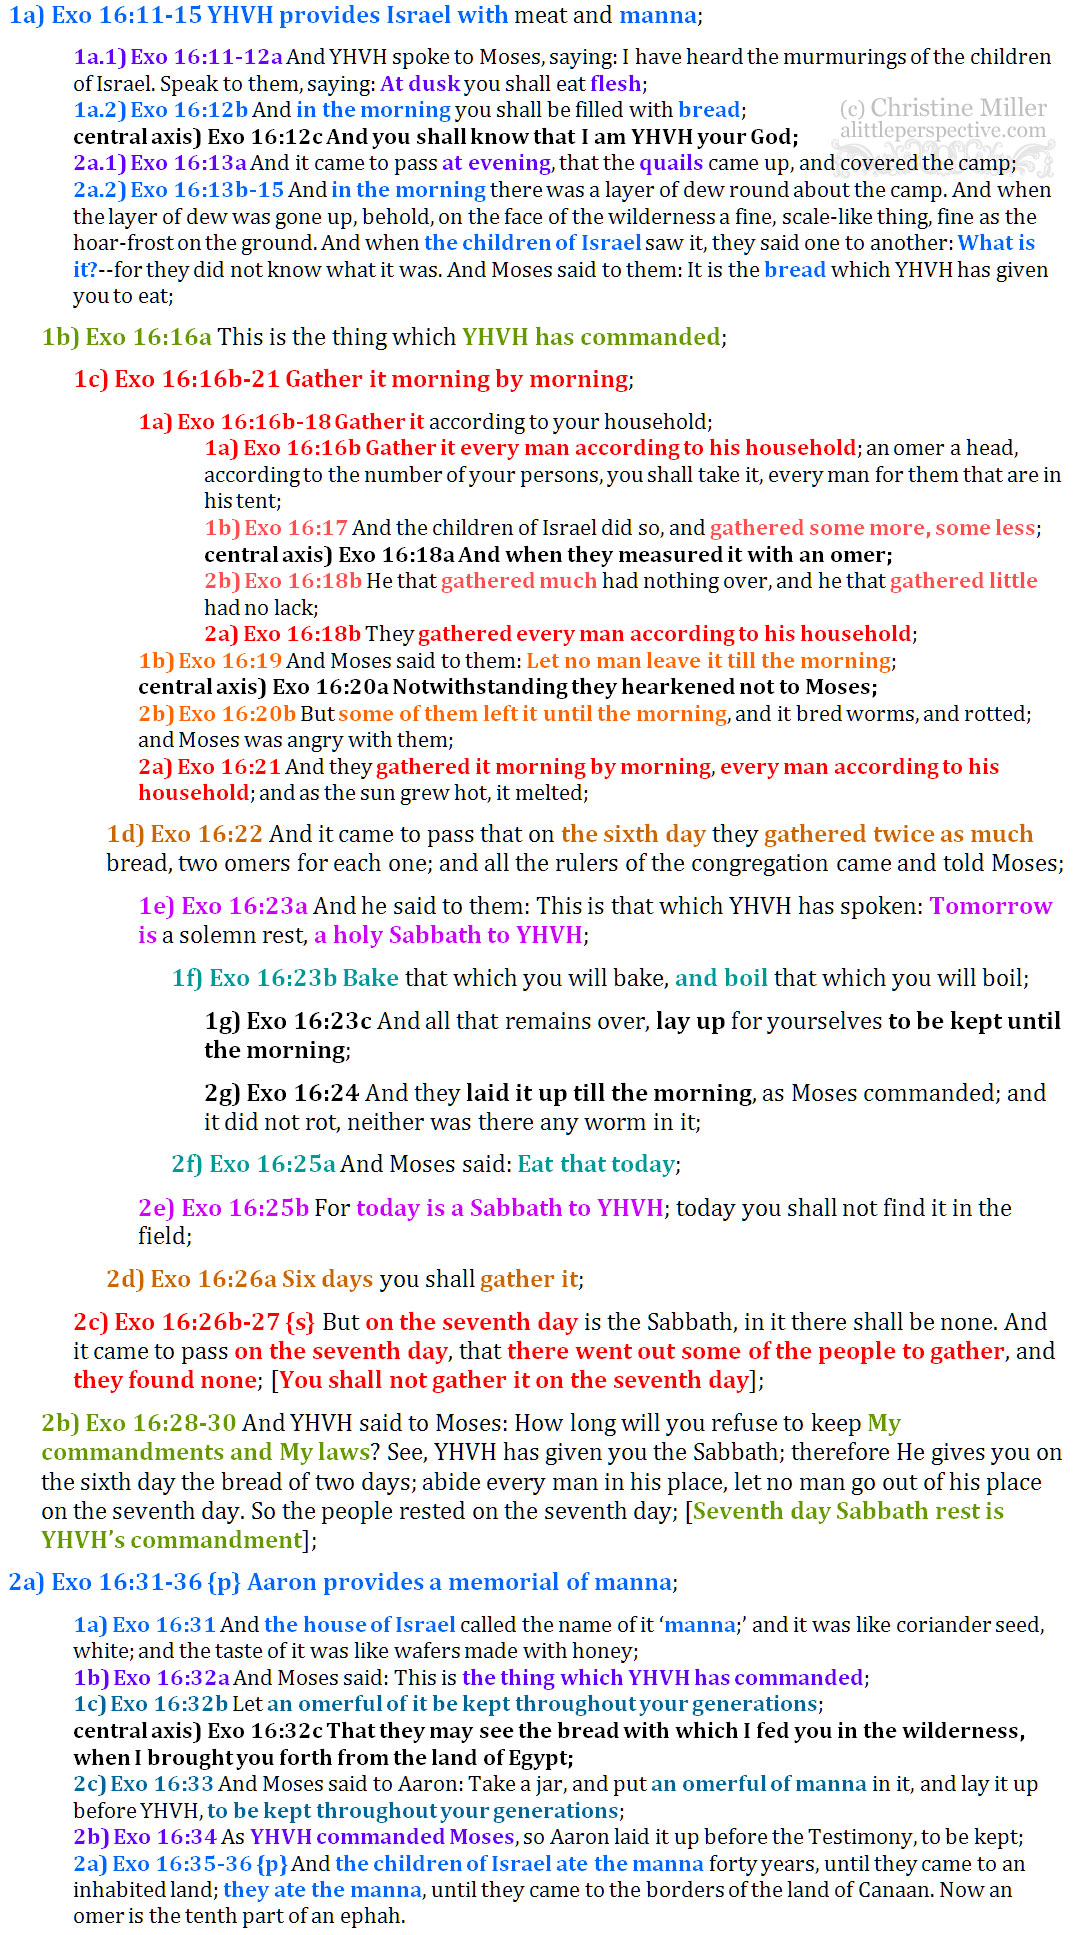 Exo 16:11-36 reverse parallelism   christine's bible study at alittleperspective.com